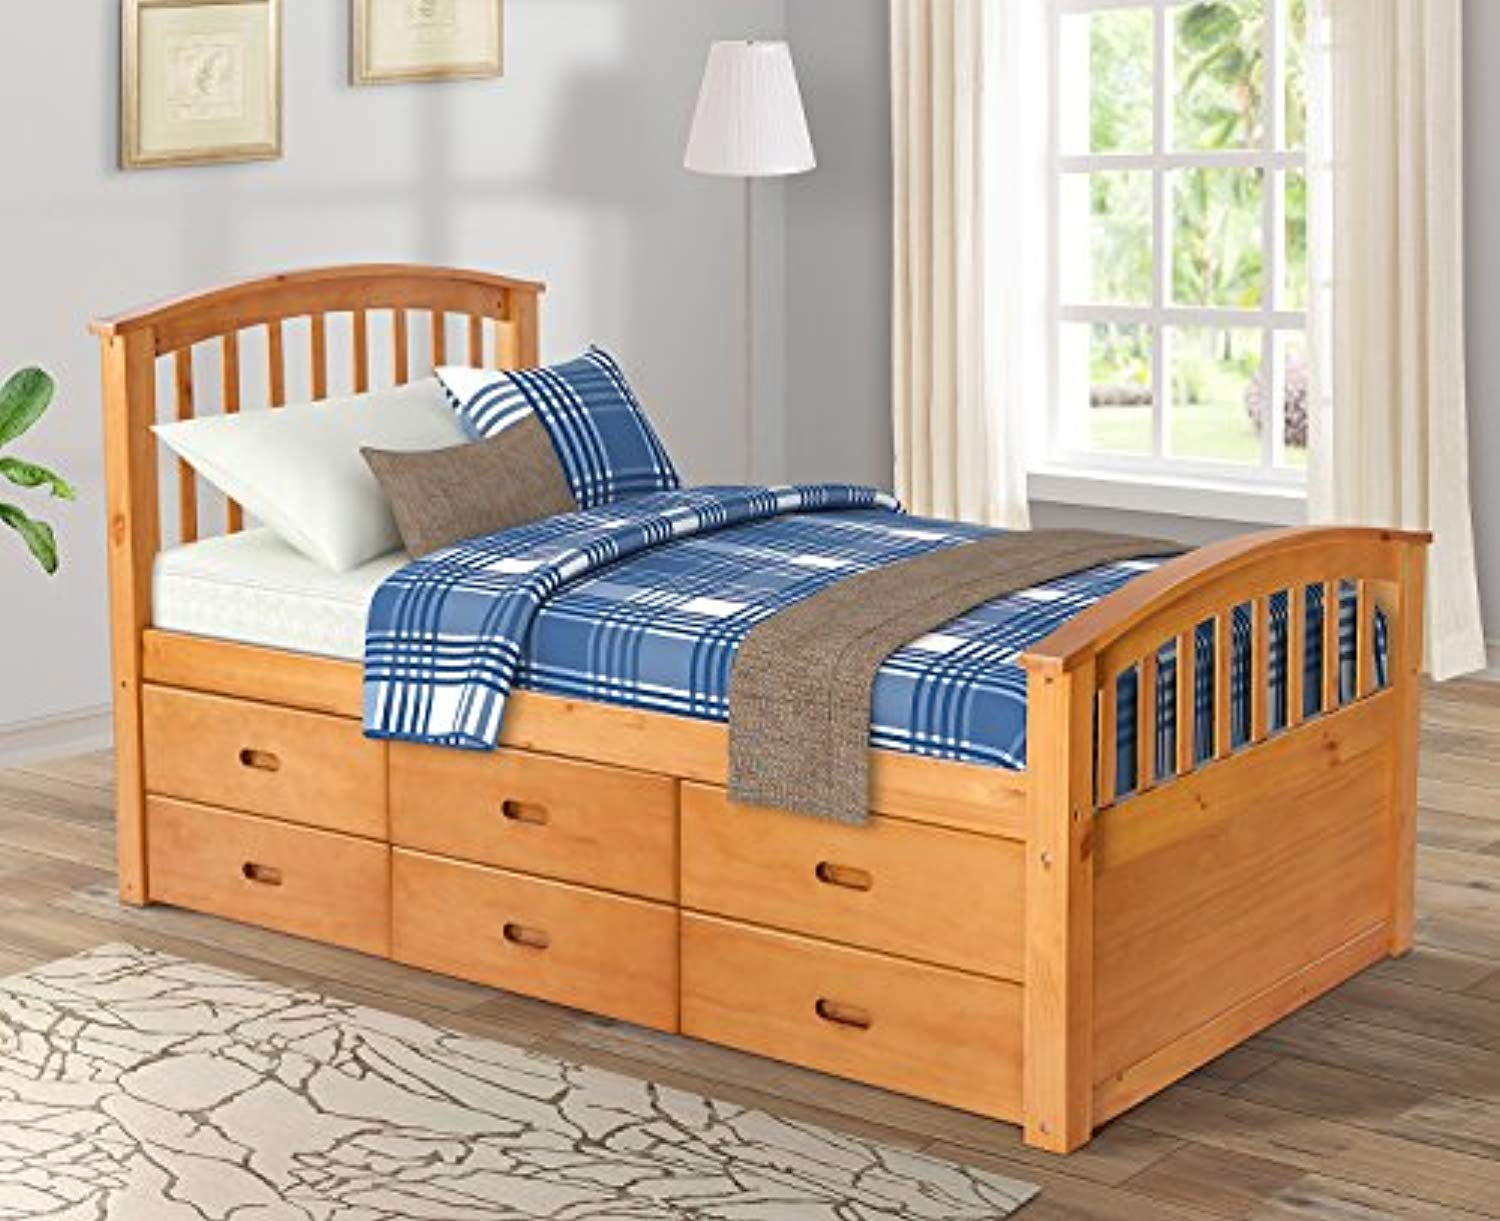 Twin Size Platform Storage Bed Solid Wood Bed With 6 Drawers Natural Ek Chic Home